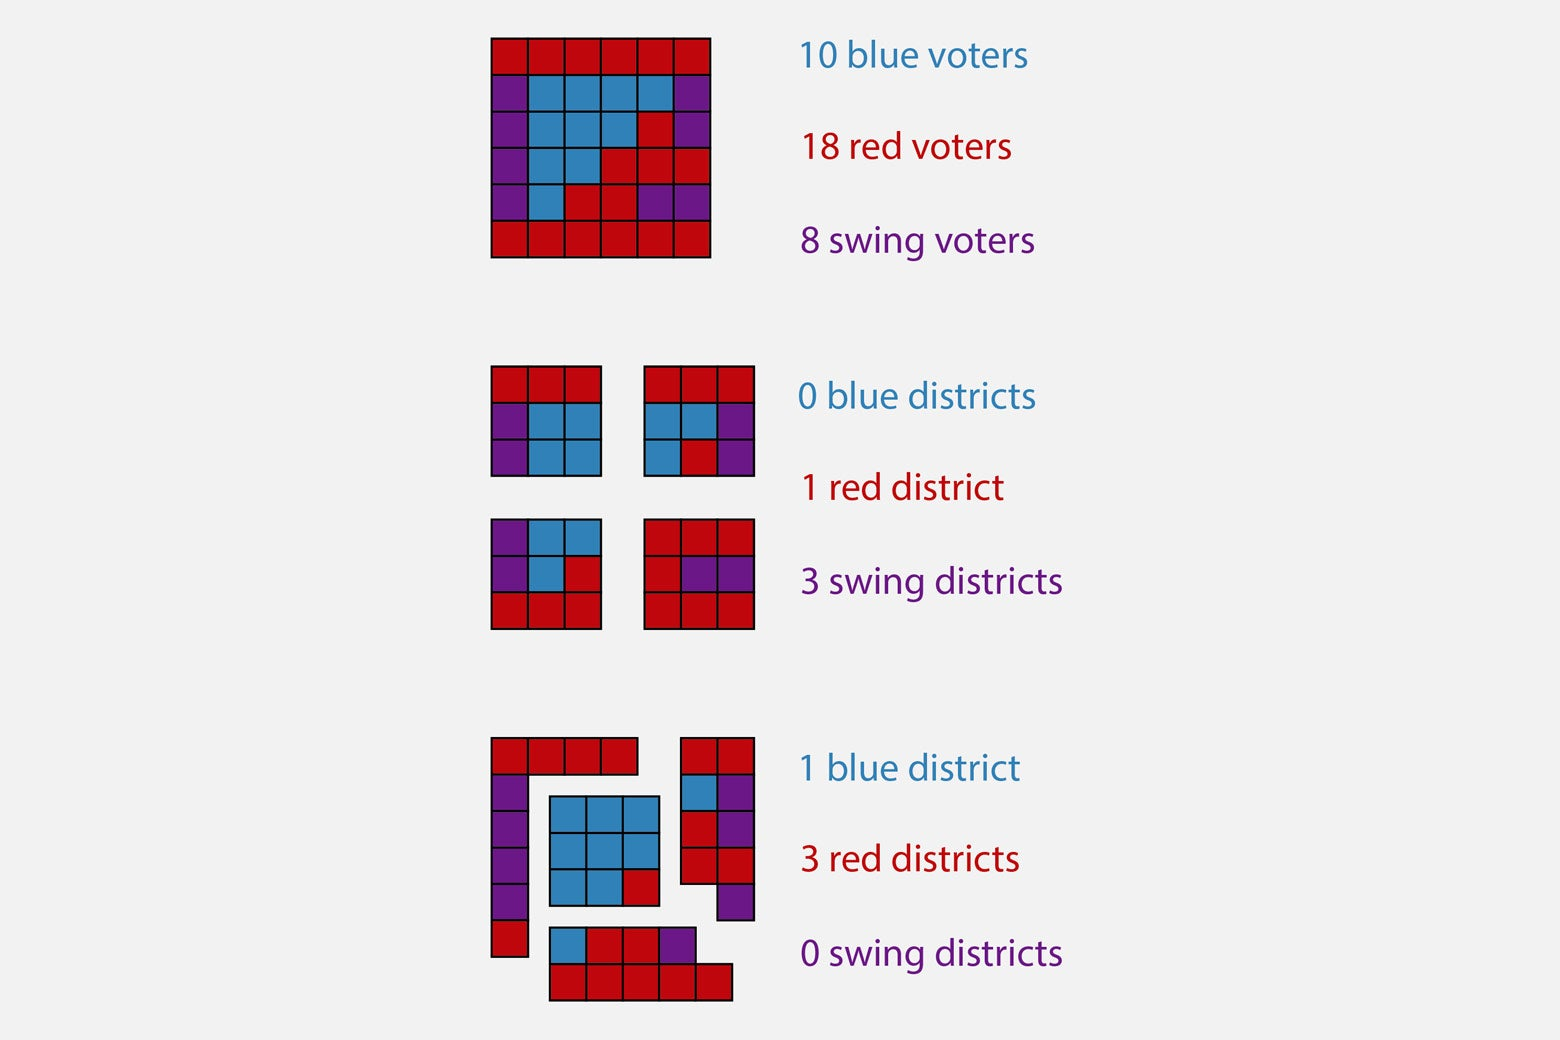 Top: Grid with 10 blue voters, 18 red voters, 8 swing voters. Middle: Grid divided up into 0 blue districts, 1 red district, 3 swing districts. Bottom: Grid divided up into 1 blue district, 3 red districts, 0 swing districts.